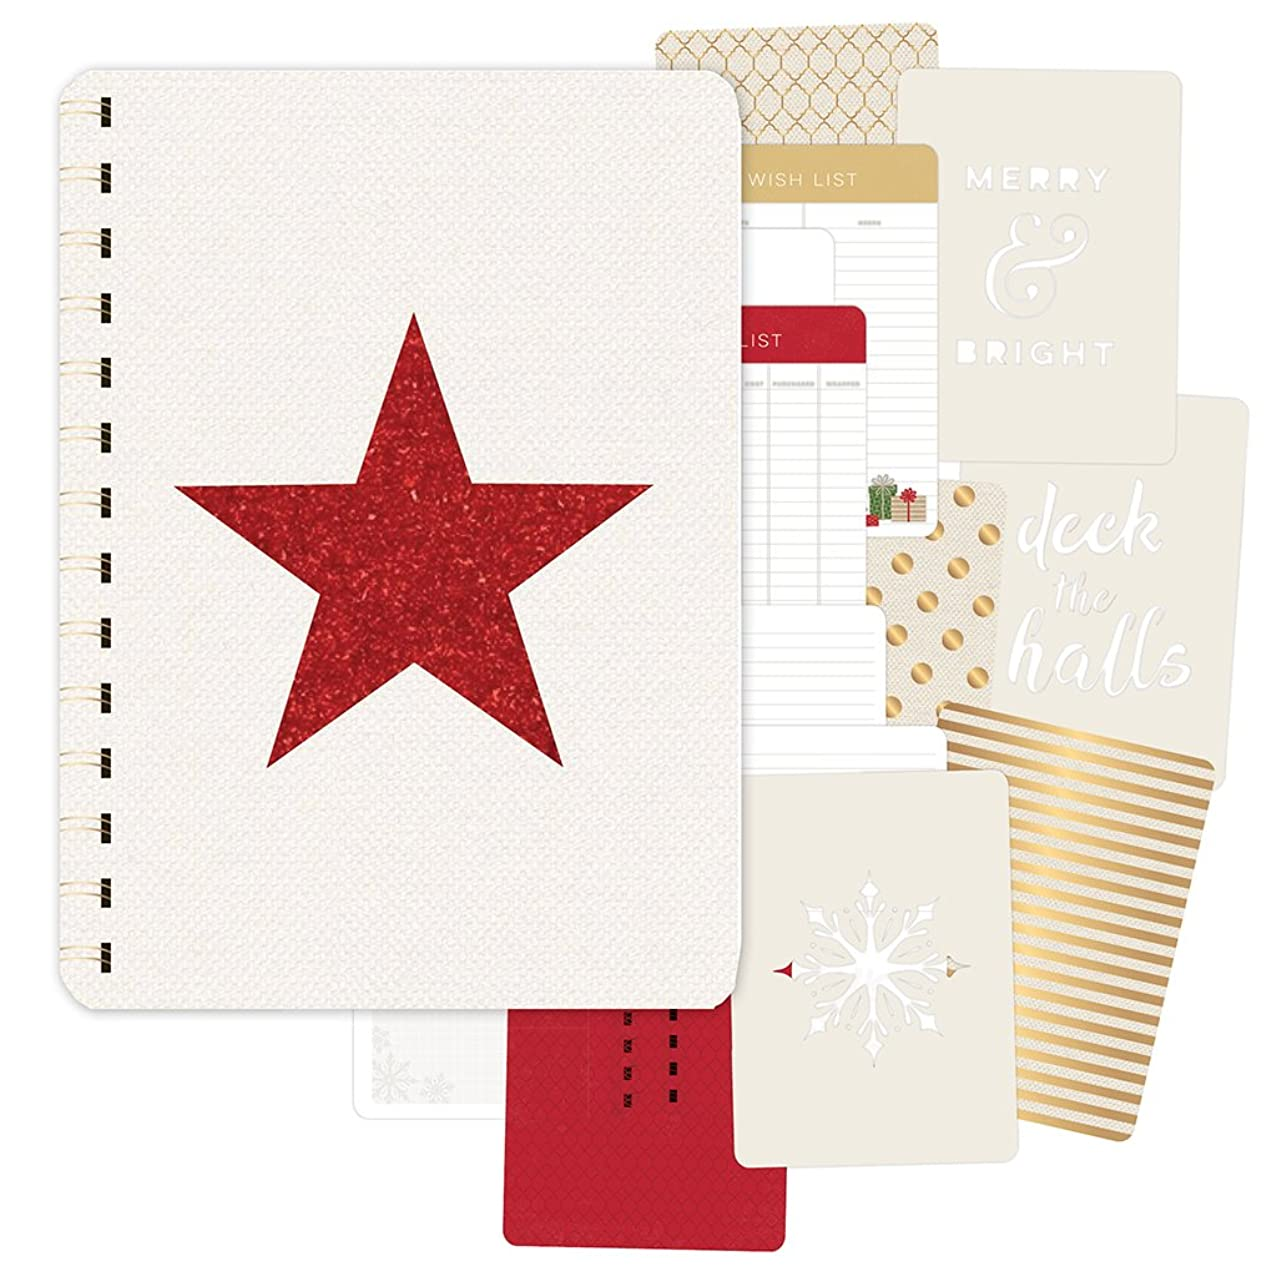 Pink Paislee Yuletide 39 Piece Gold Foil/Red Glitter Journal Document December